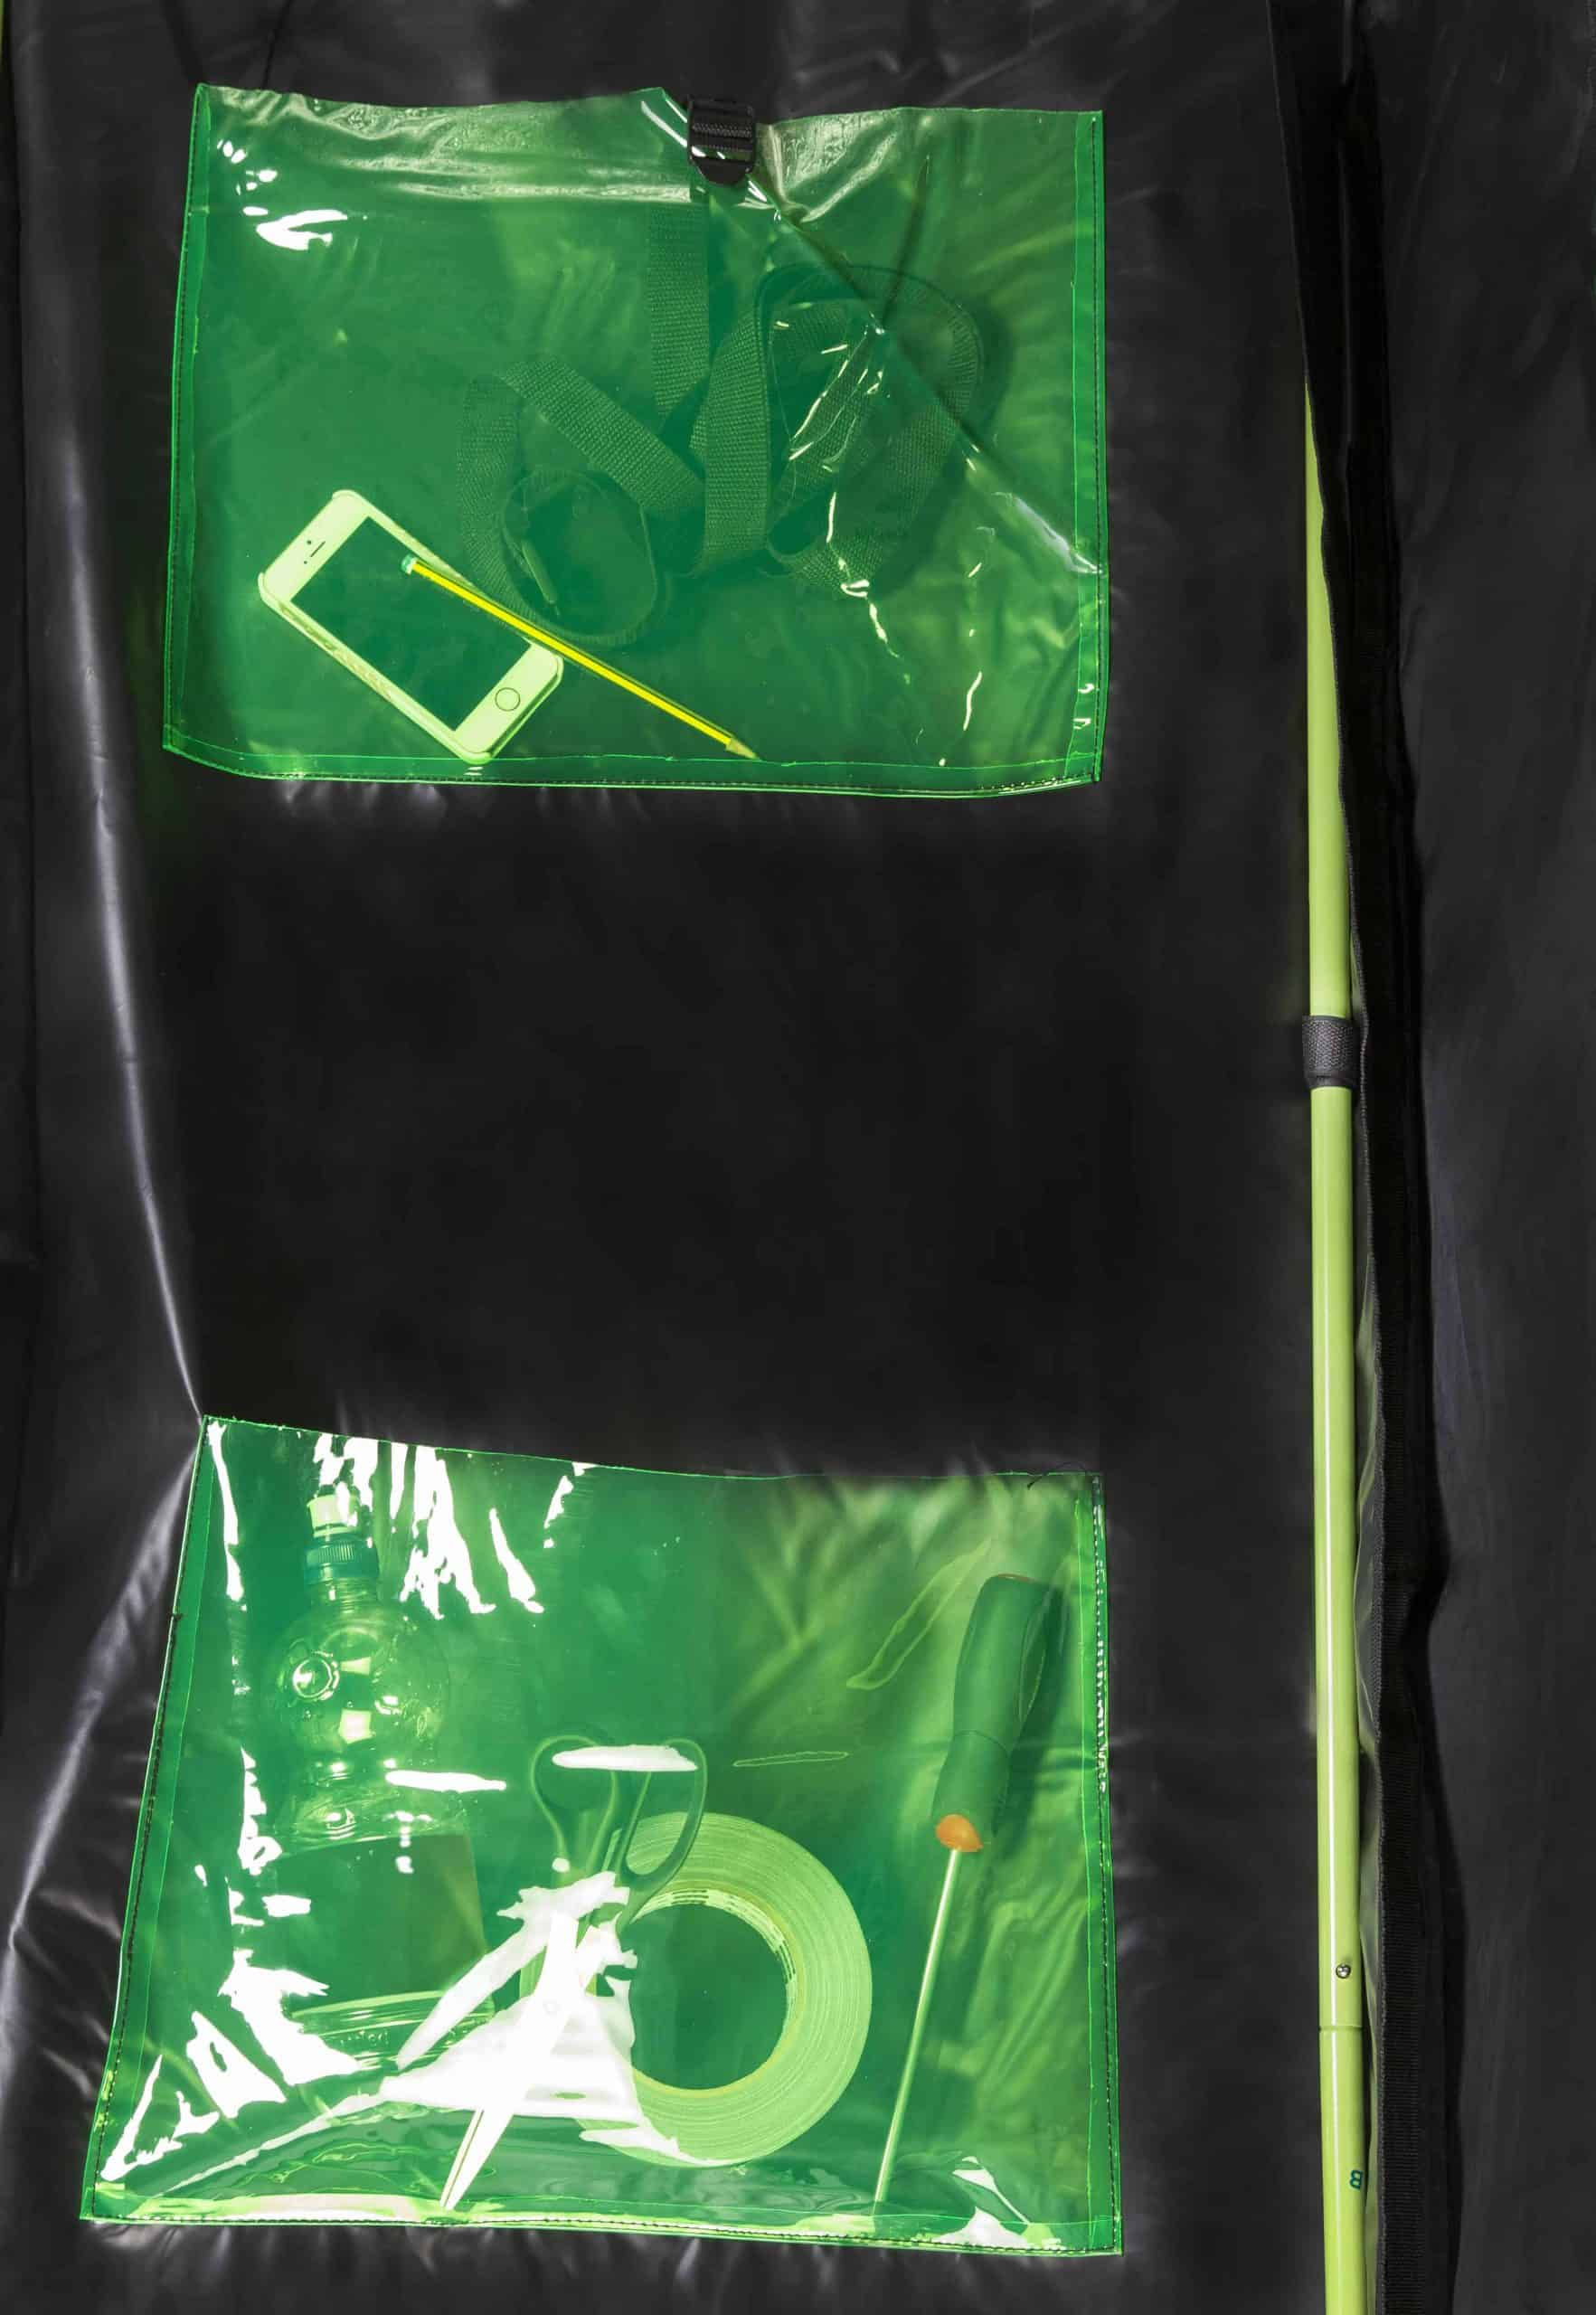 X Qube pockets for grow rooms